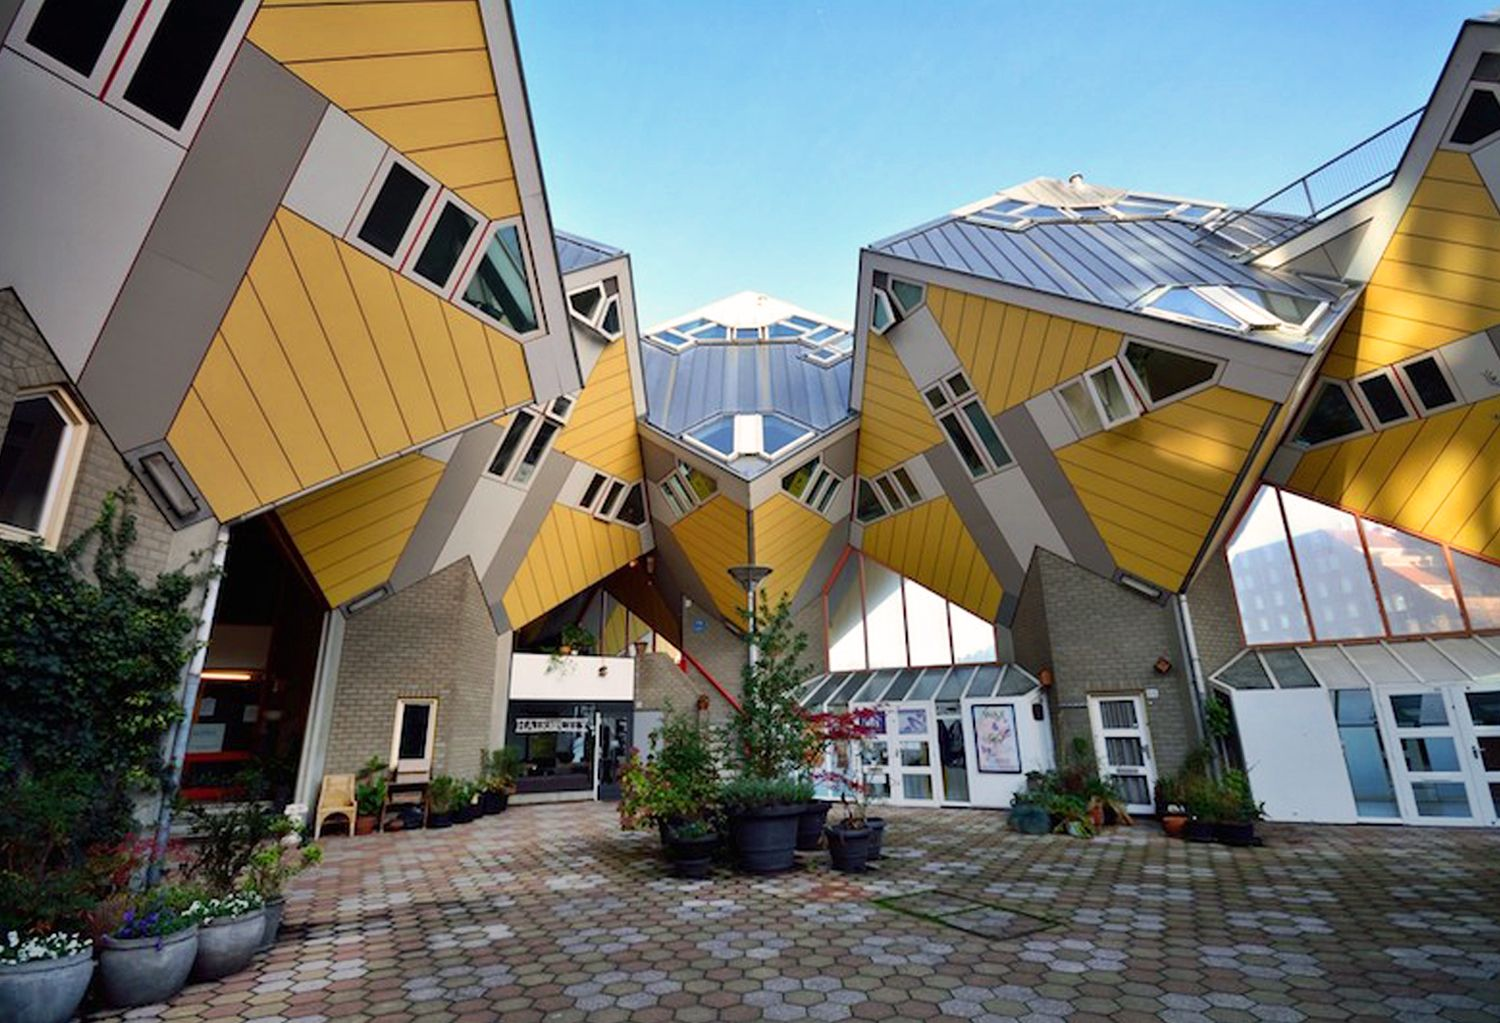 10 Impossibly Awesome Houses From All Around The World Brain Berries